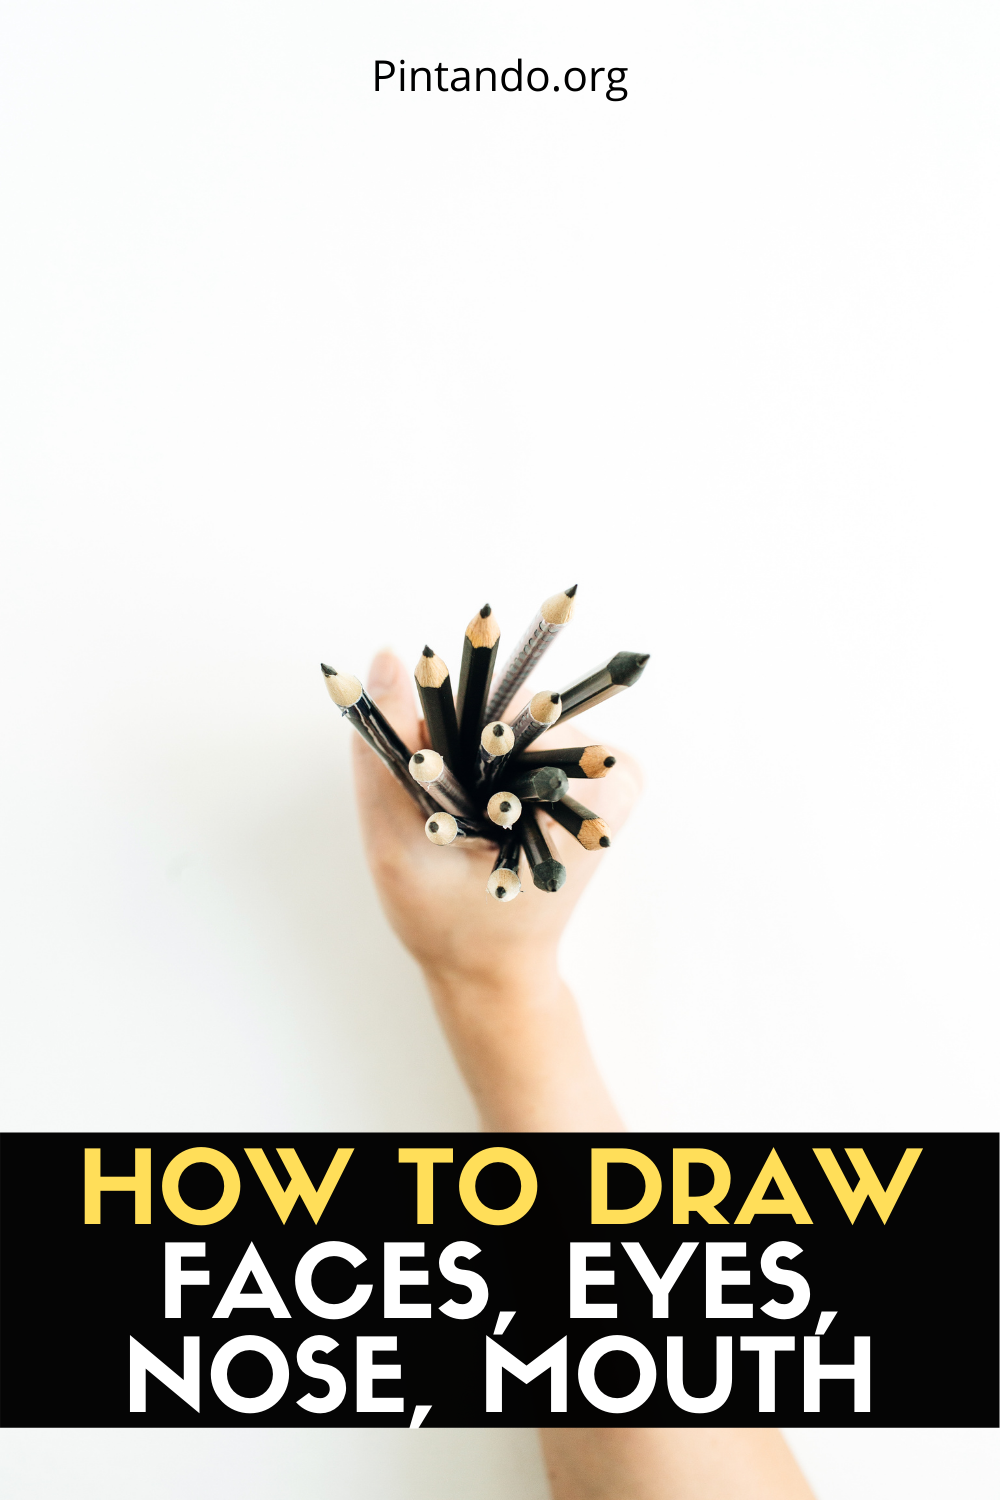 HOW TO DRAW FACES, EYES, NOSE, MOUTH